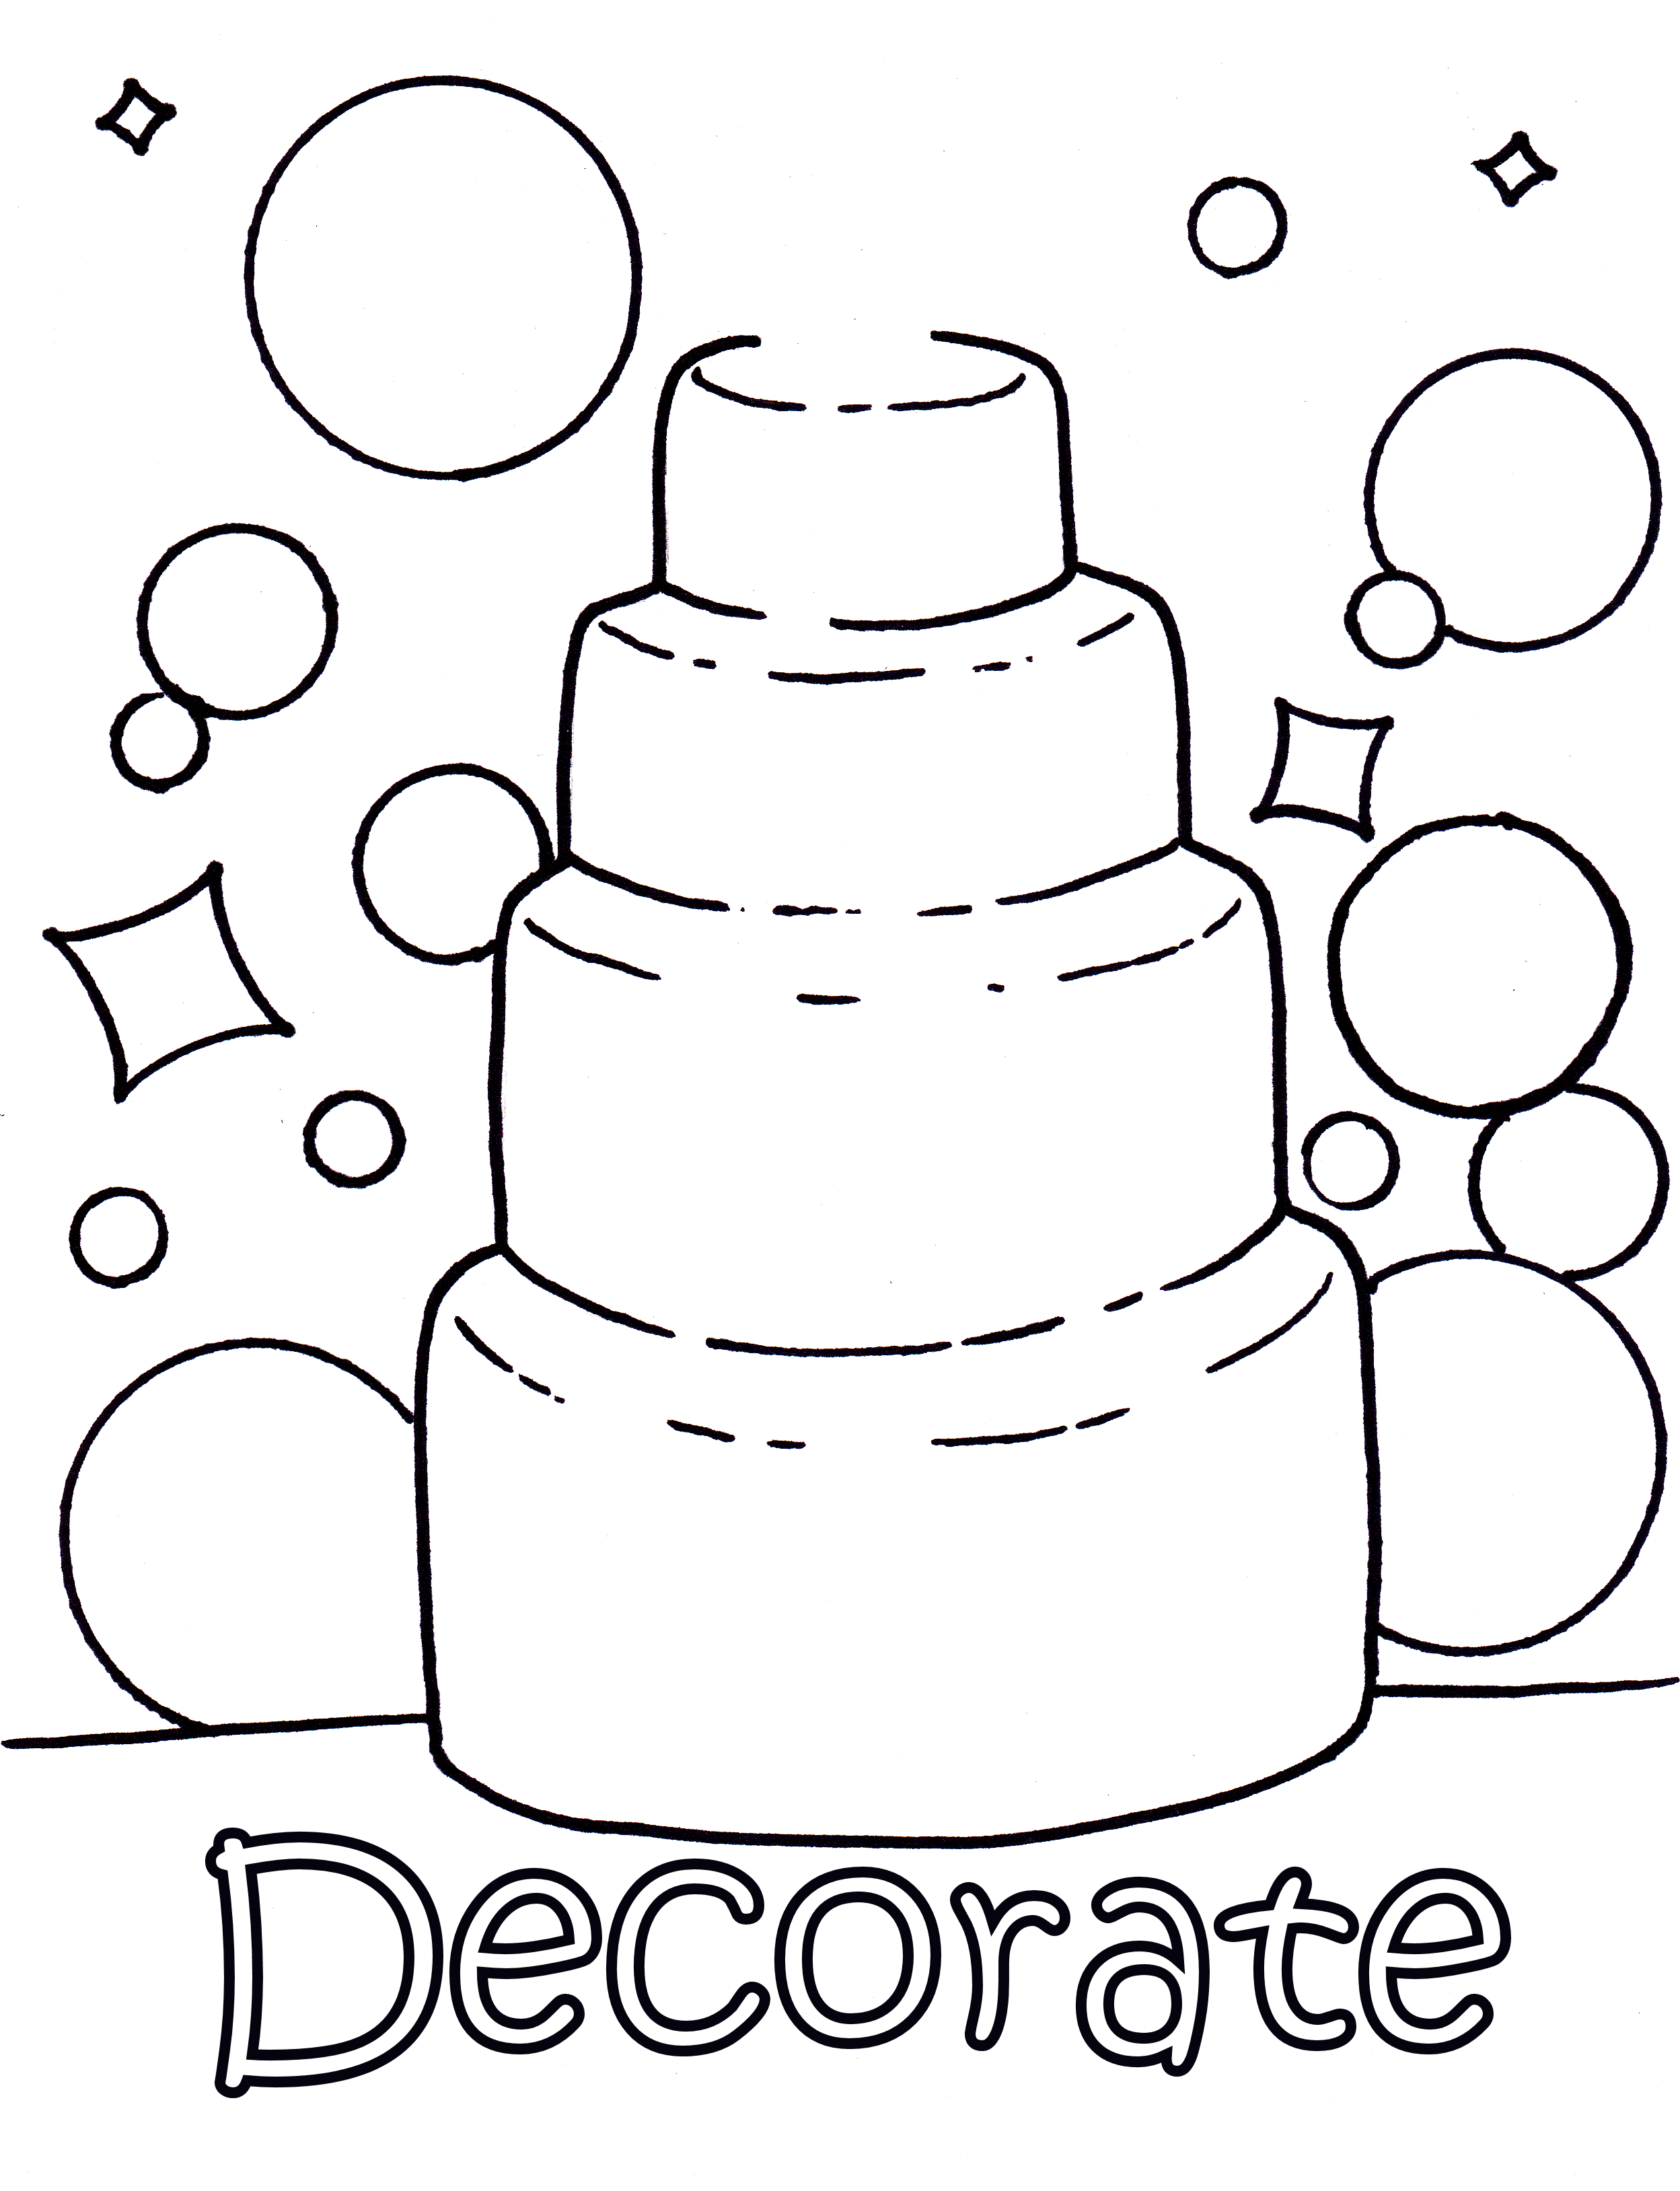 Coloring picture :Wedding cake colouring pages,wedding